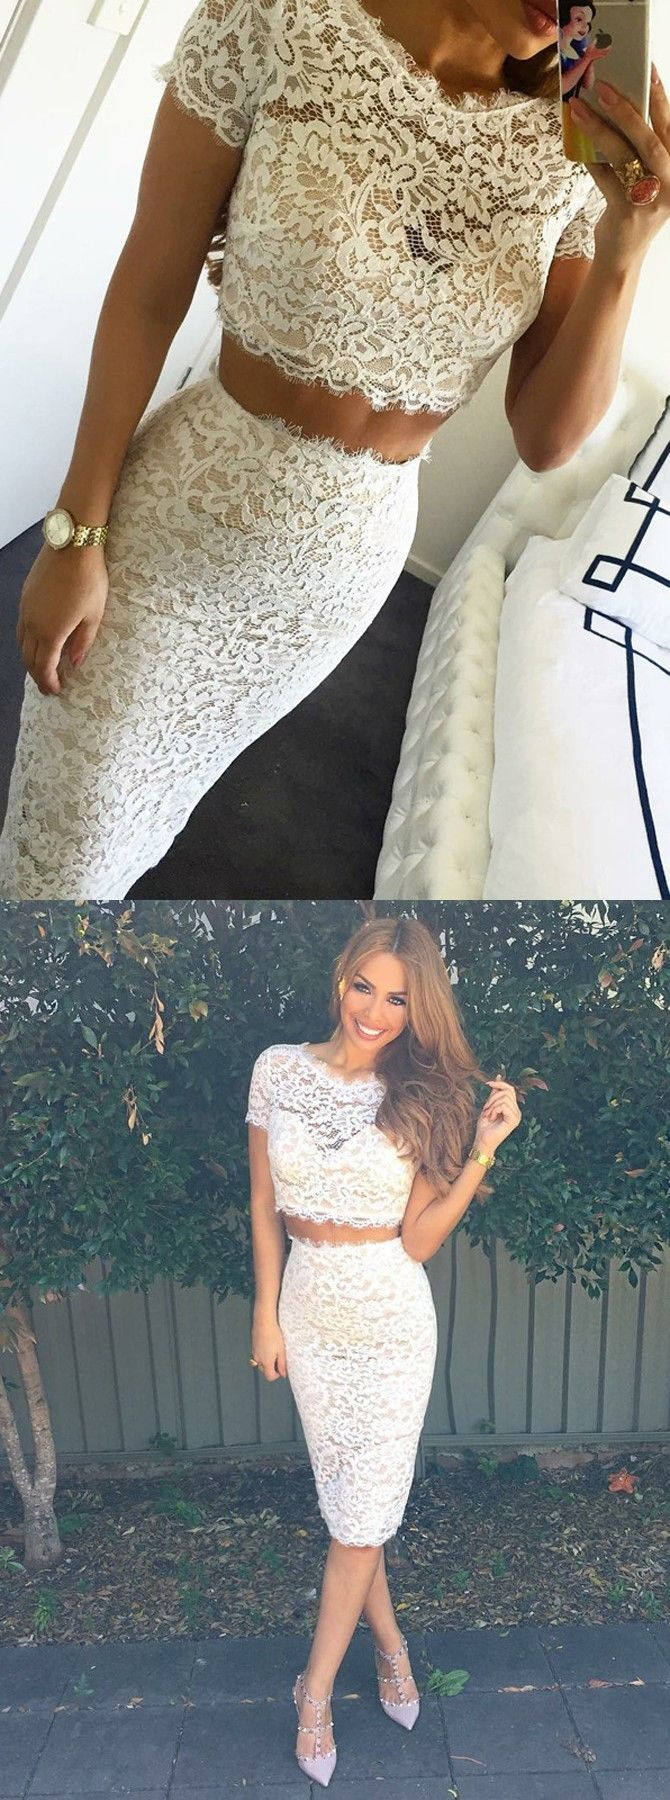 Elegant 2 Pieces Tight White Lace Semi Formal Party Dresses Wedding Party Gowns Homecoming Dresses Short Tight Party Dresses Tea Length Homecoming Dresses [ 1800 x 670 Pixel ]